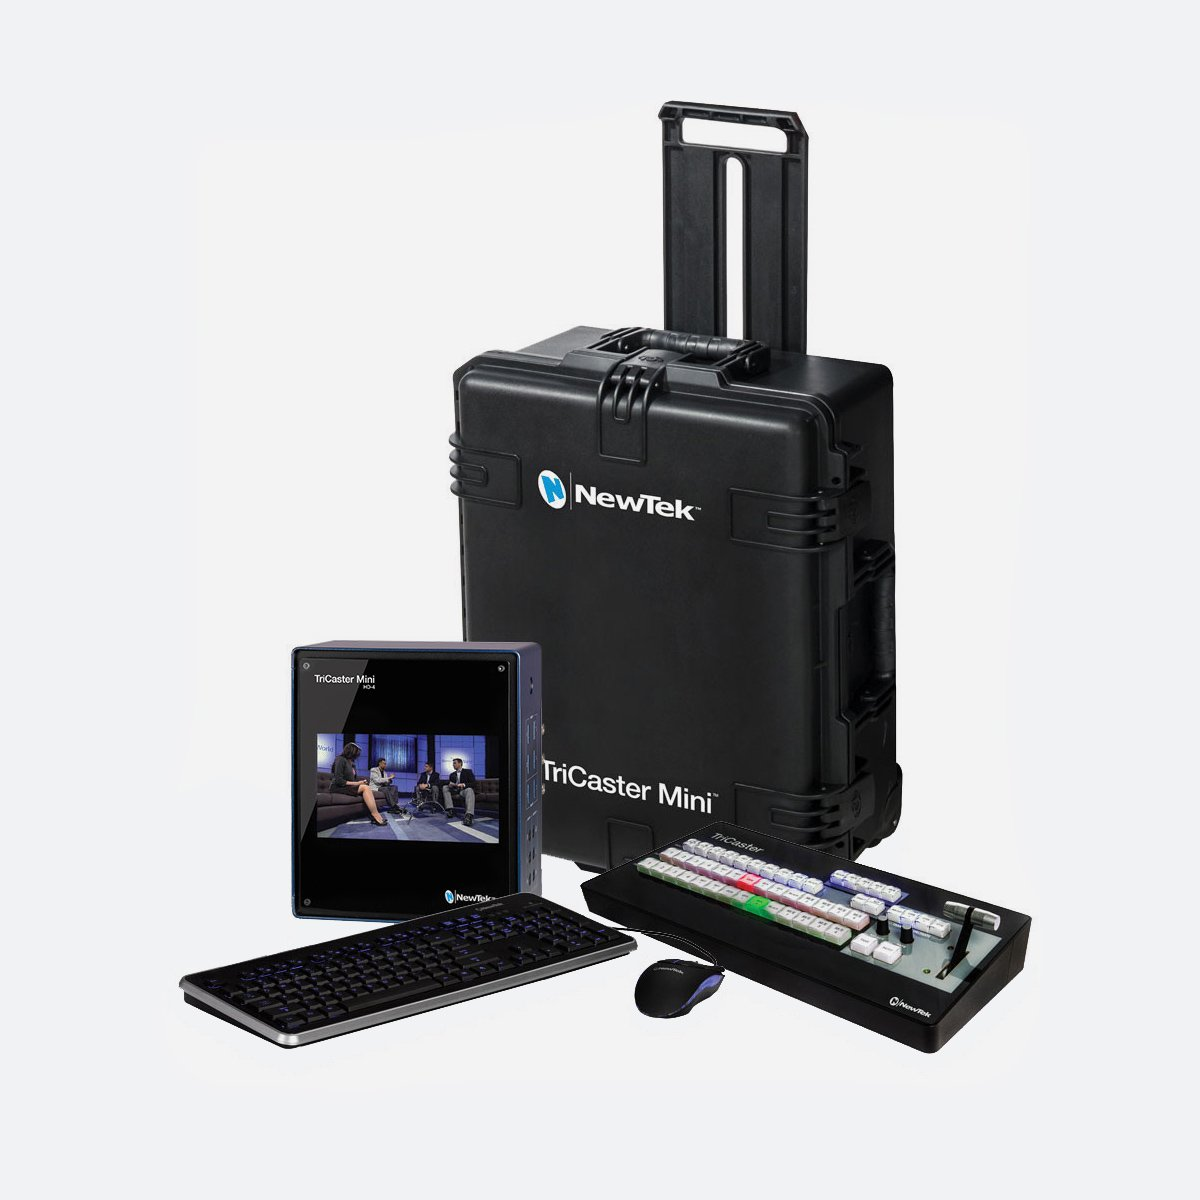 NewTek TriCaster Mini HD-4i HDMI Bundle new 2